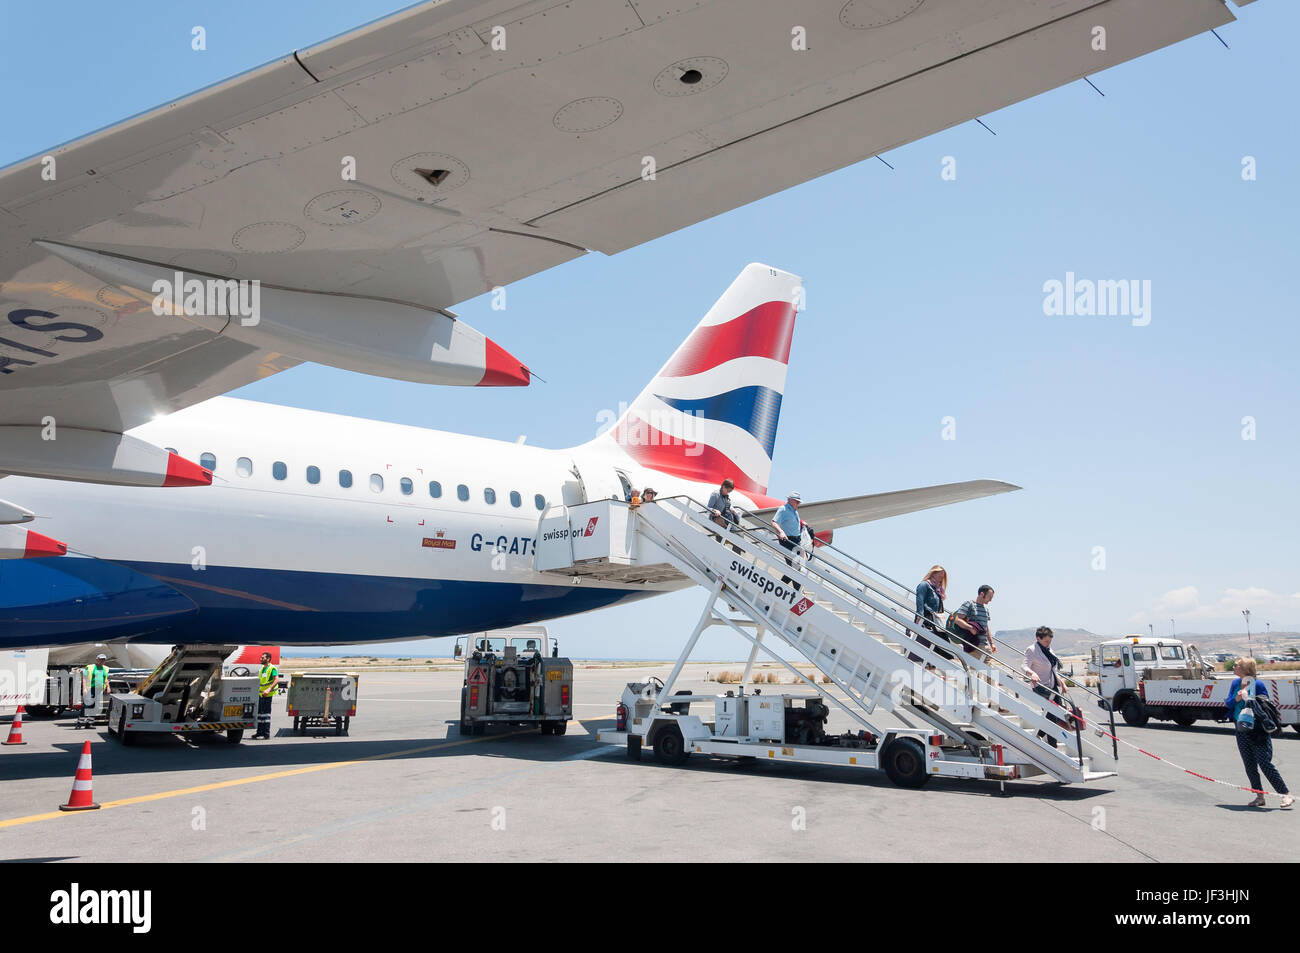 Passengers disembarking British Airways Airbus A320 aircraft, Heraklion International Airport, Heraklion (Irakleio), - Stock Image